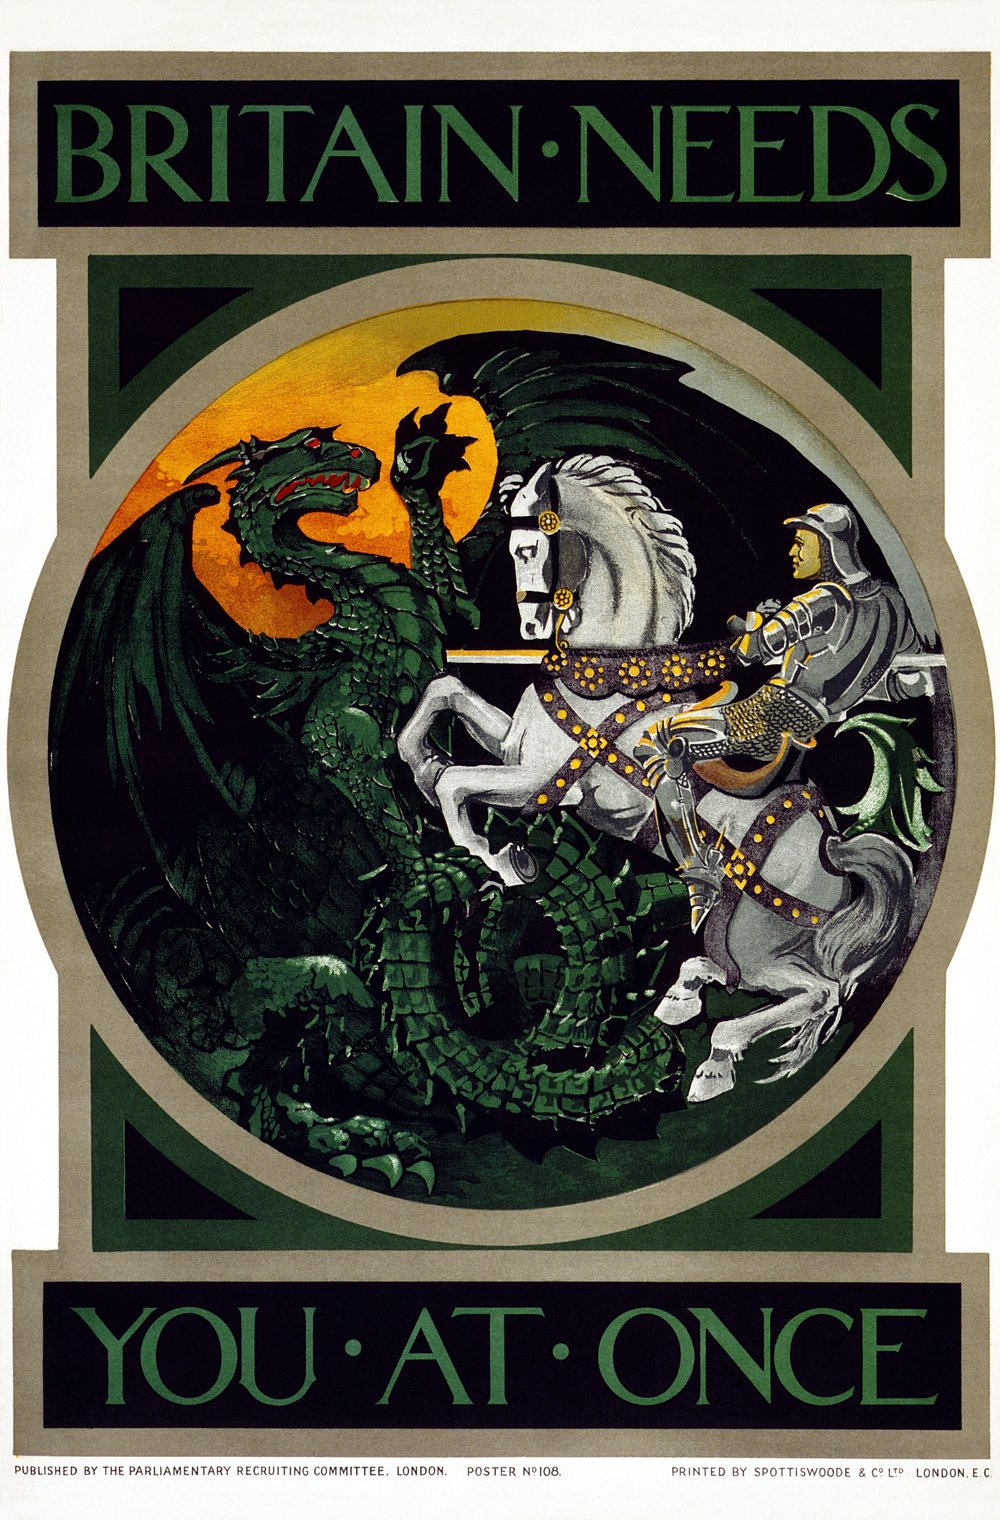 By George: A British World War I recruitment poster invokes St. George, England's patron saint. England could use him right about now.